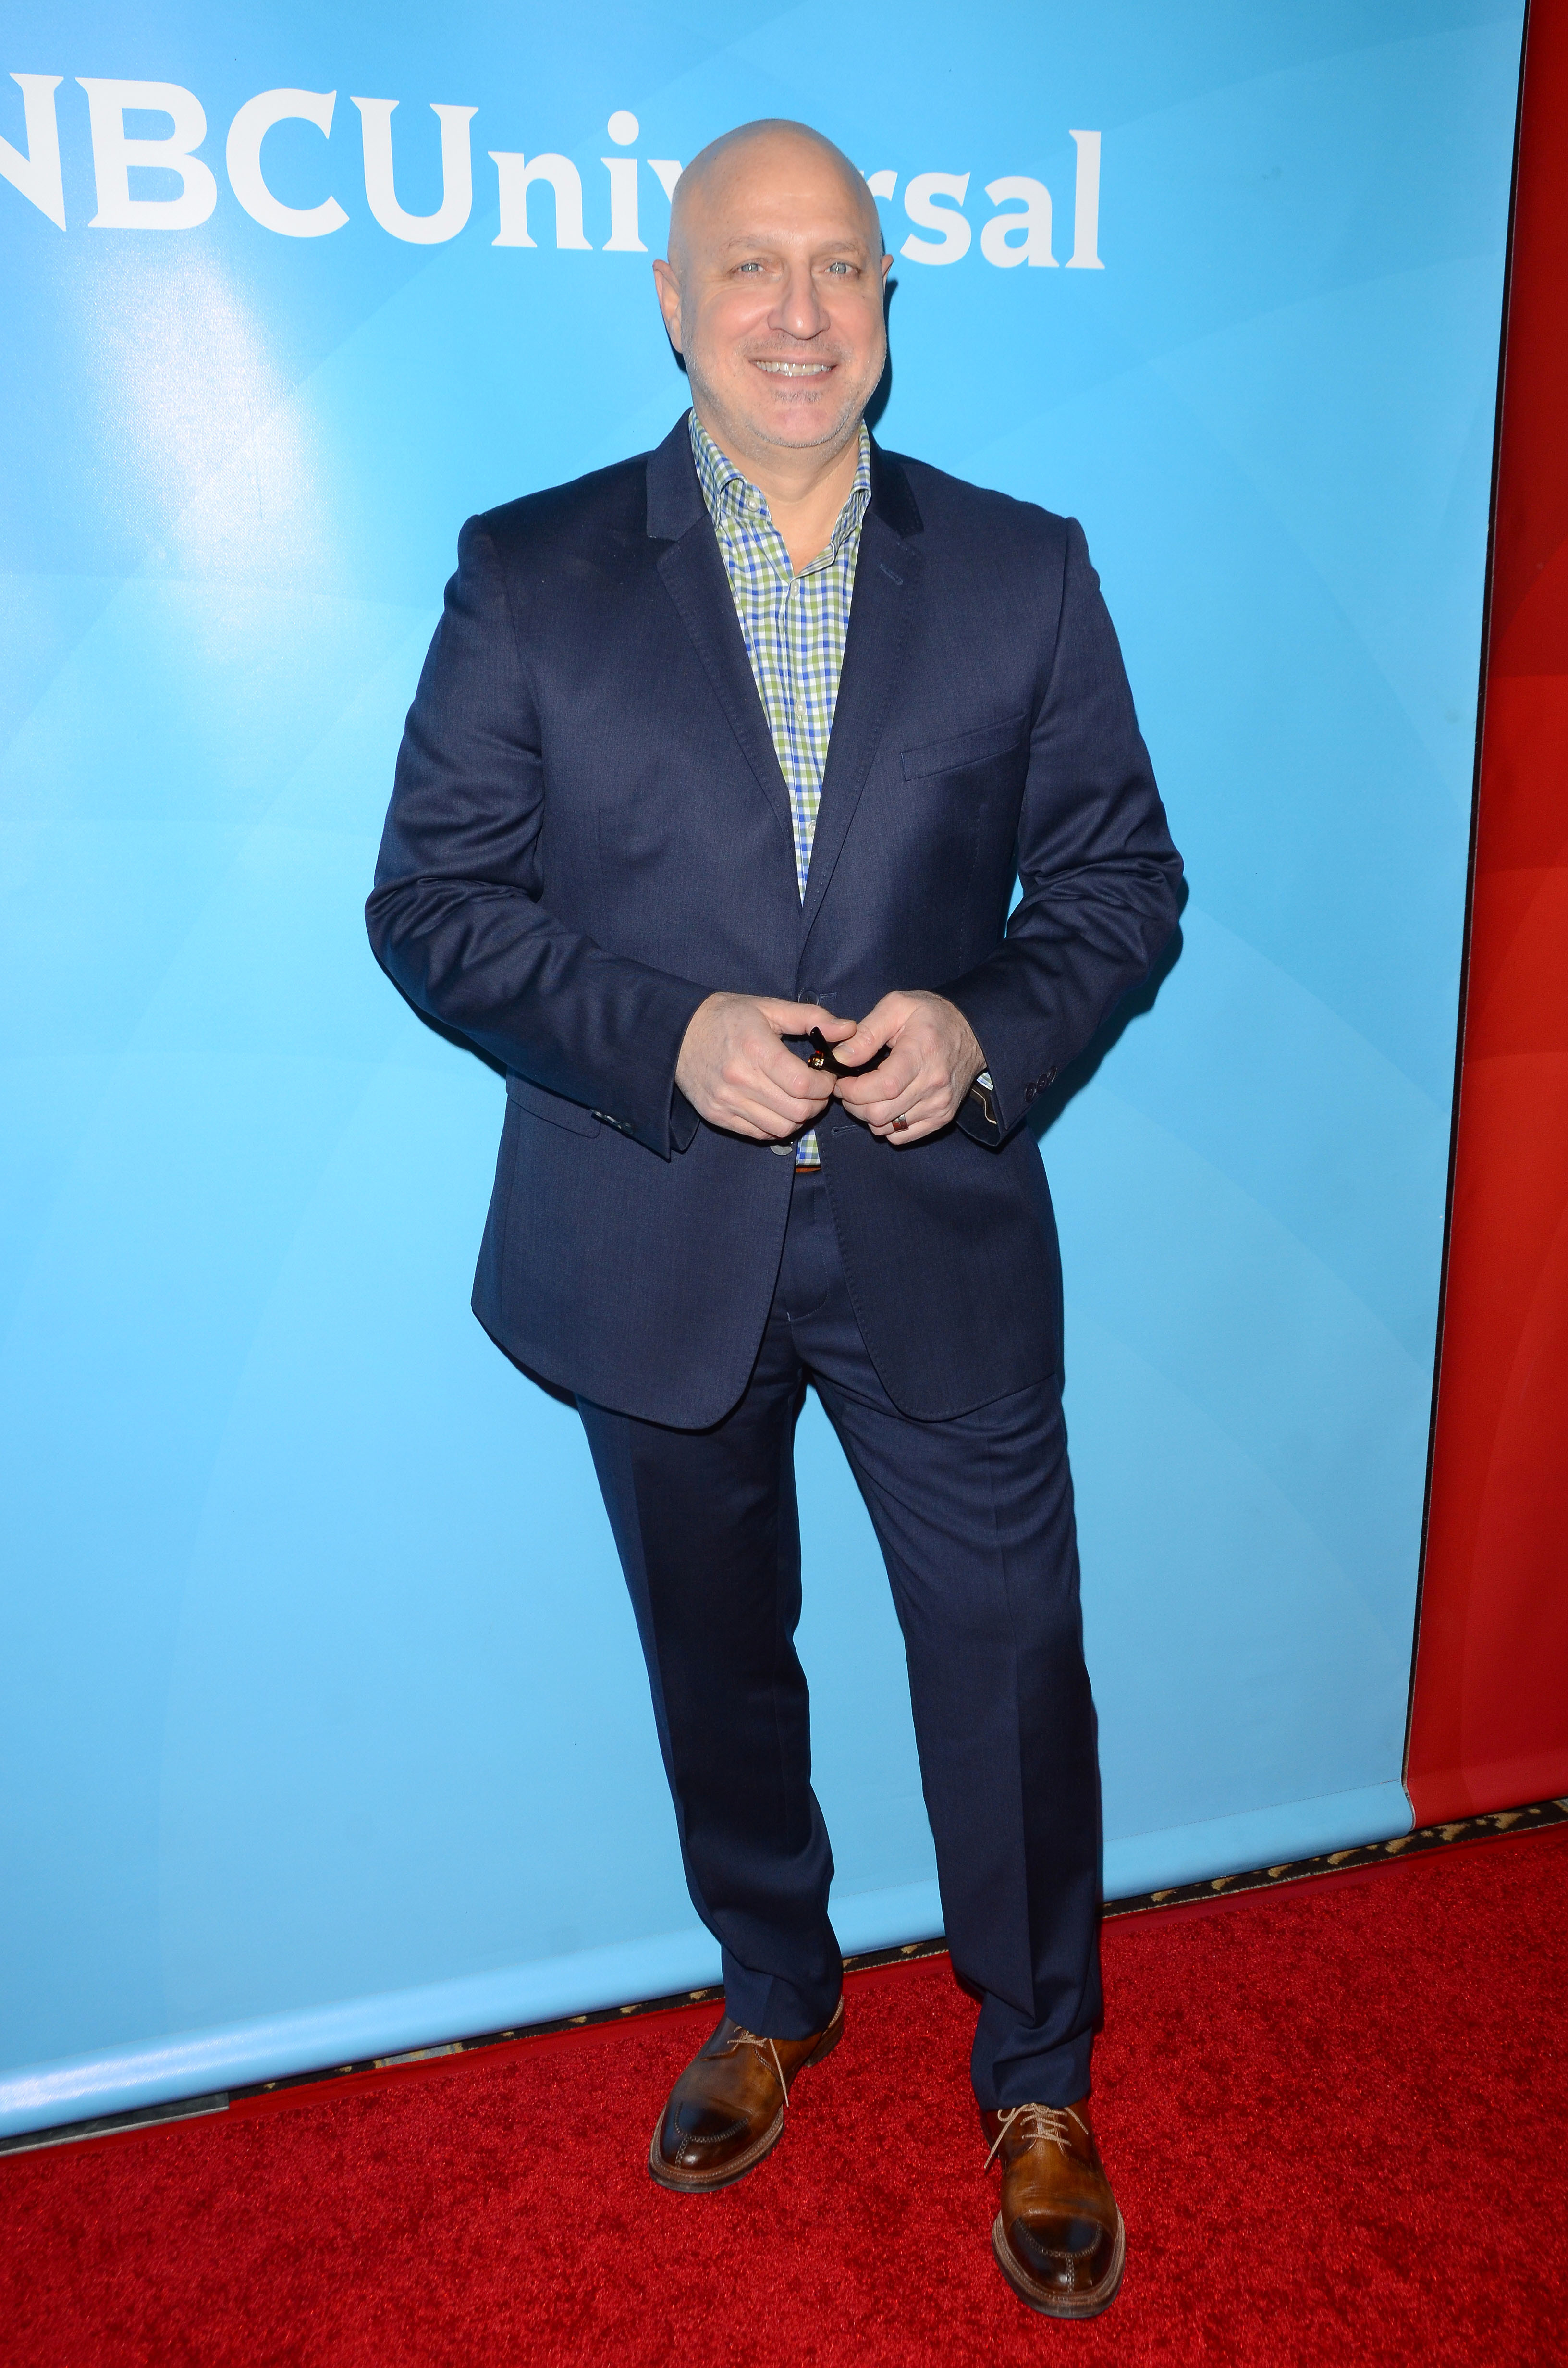 Tom Colicchio attends the NBCUniversal 2015 TCA Press Tour in Pasadena, California on January 15, 2015.